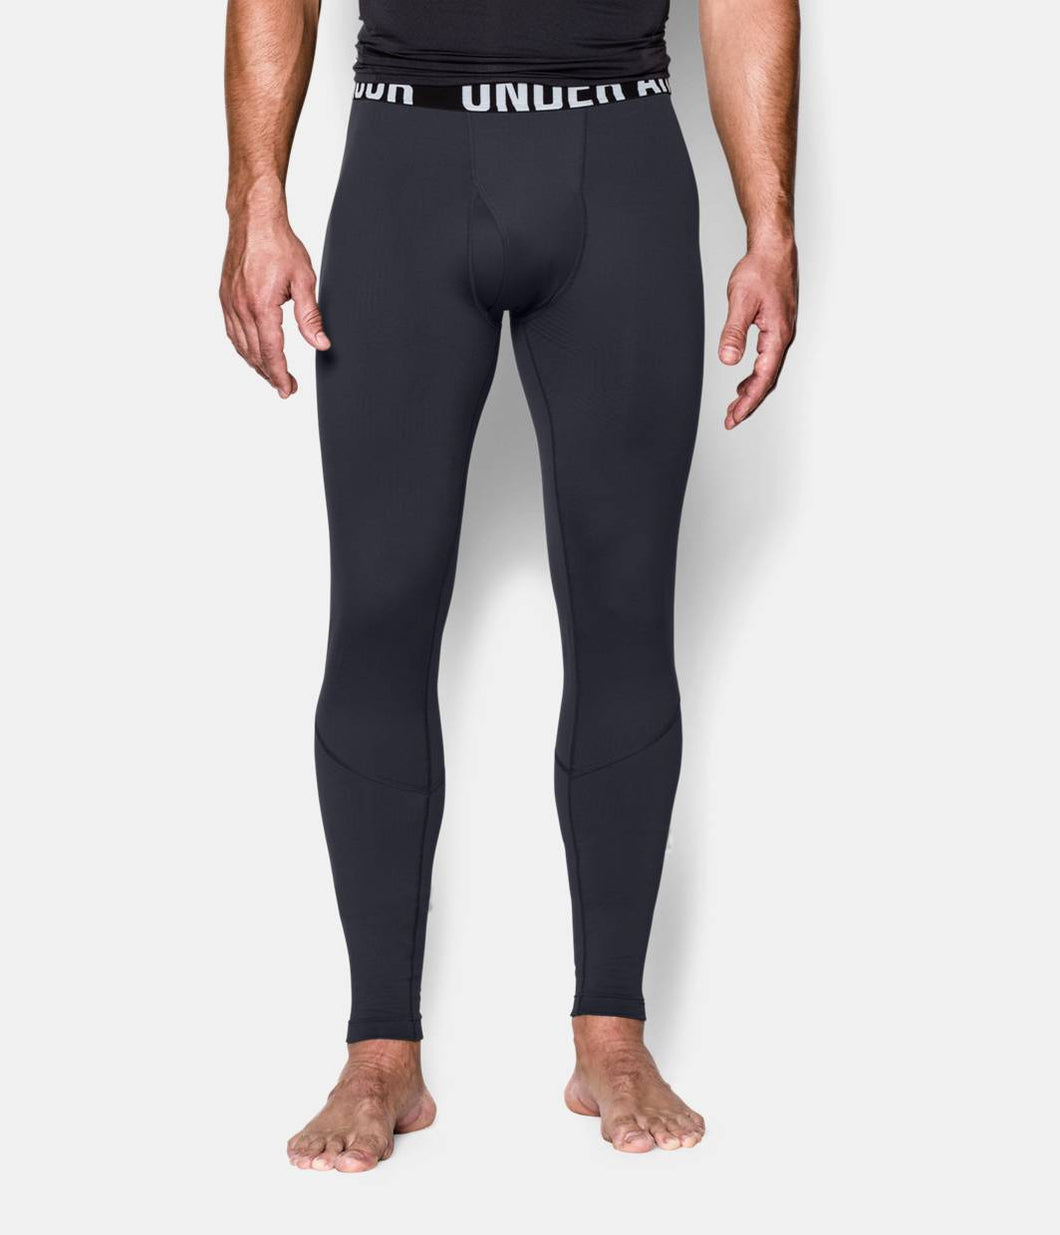 Under Armour 124395 Men's Tactical ColdGear Leggings